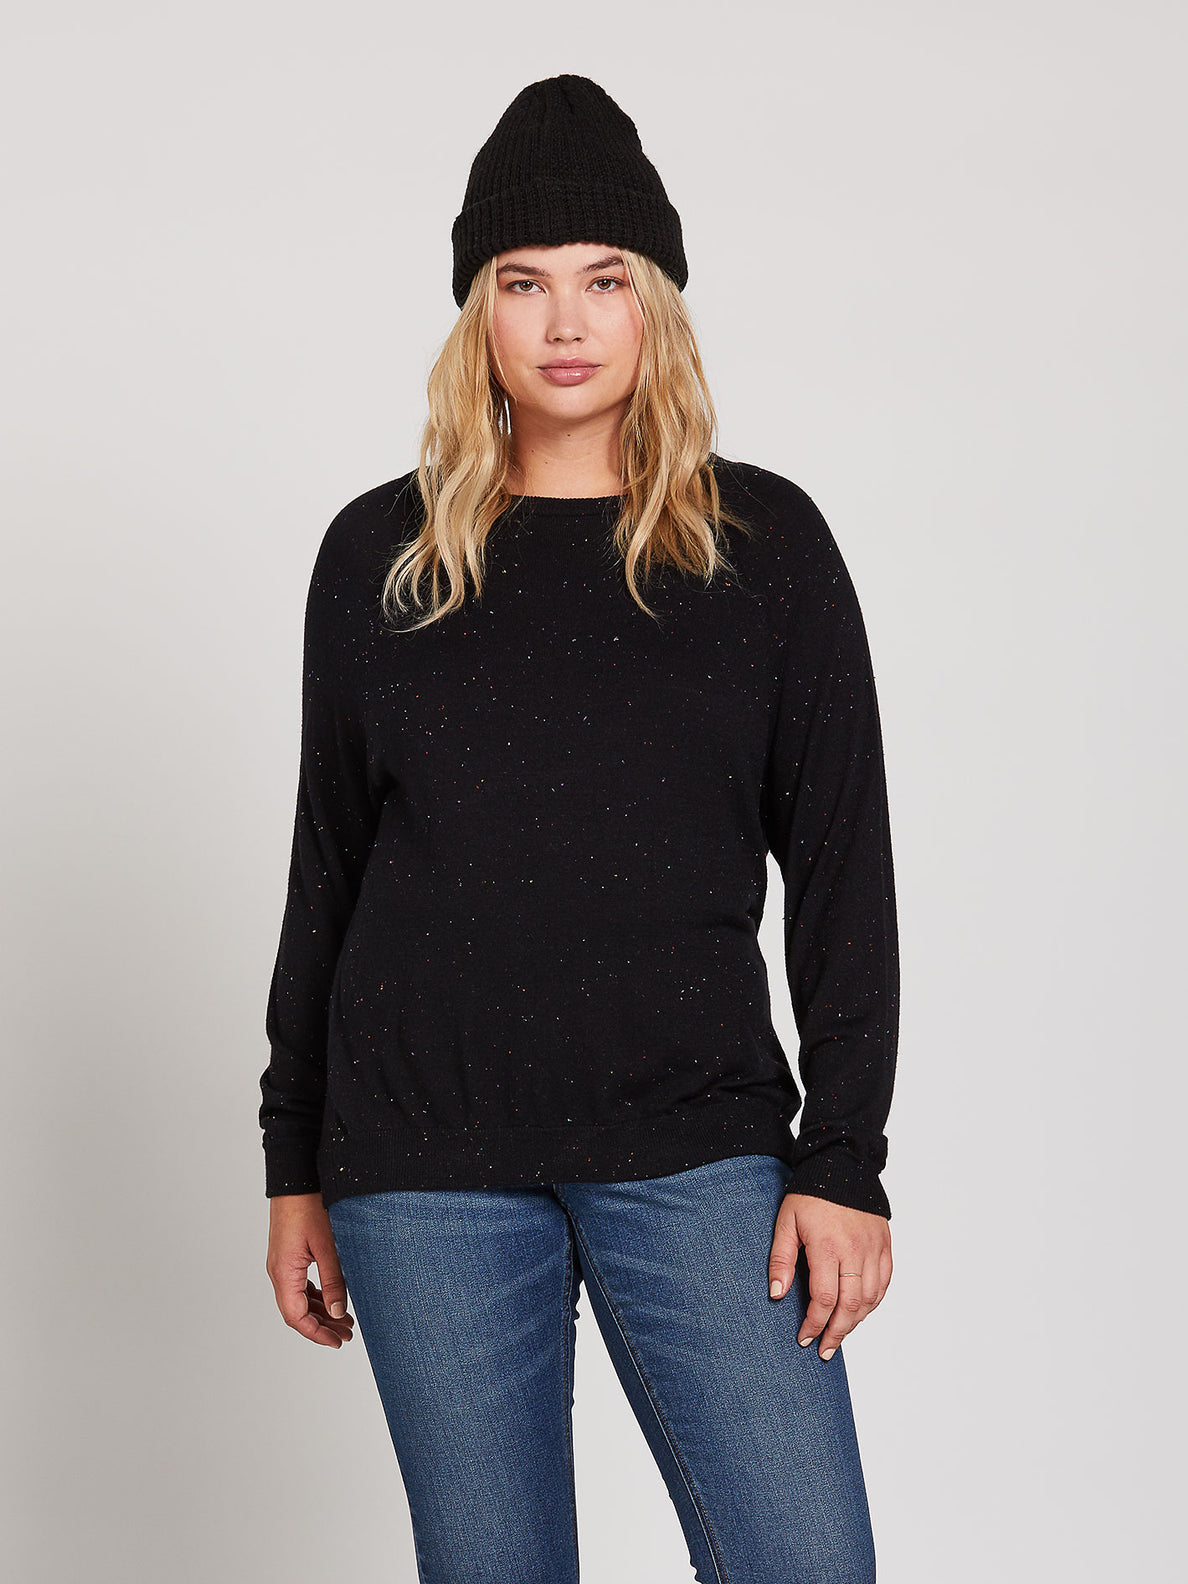 Over N Over Sweater - Black Combo (B0741908_BLC) [21]